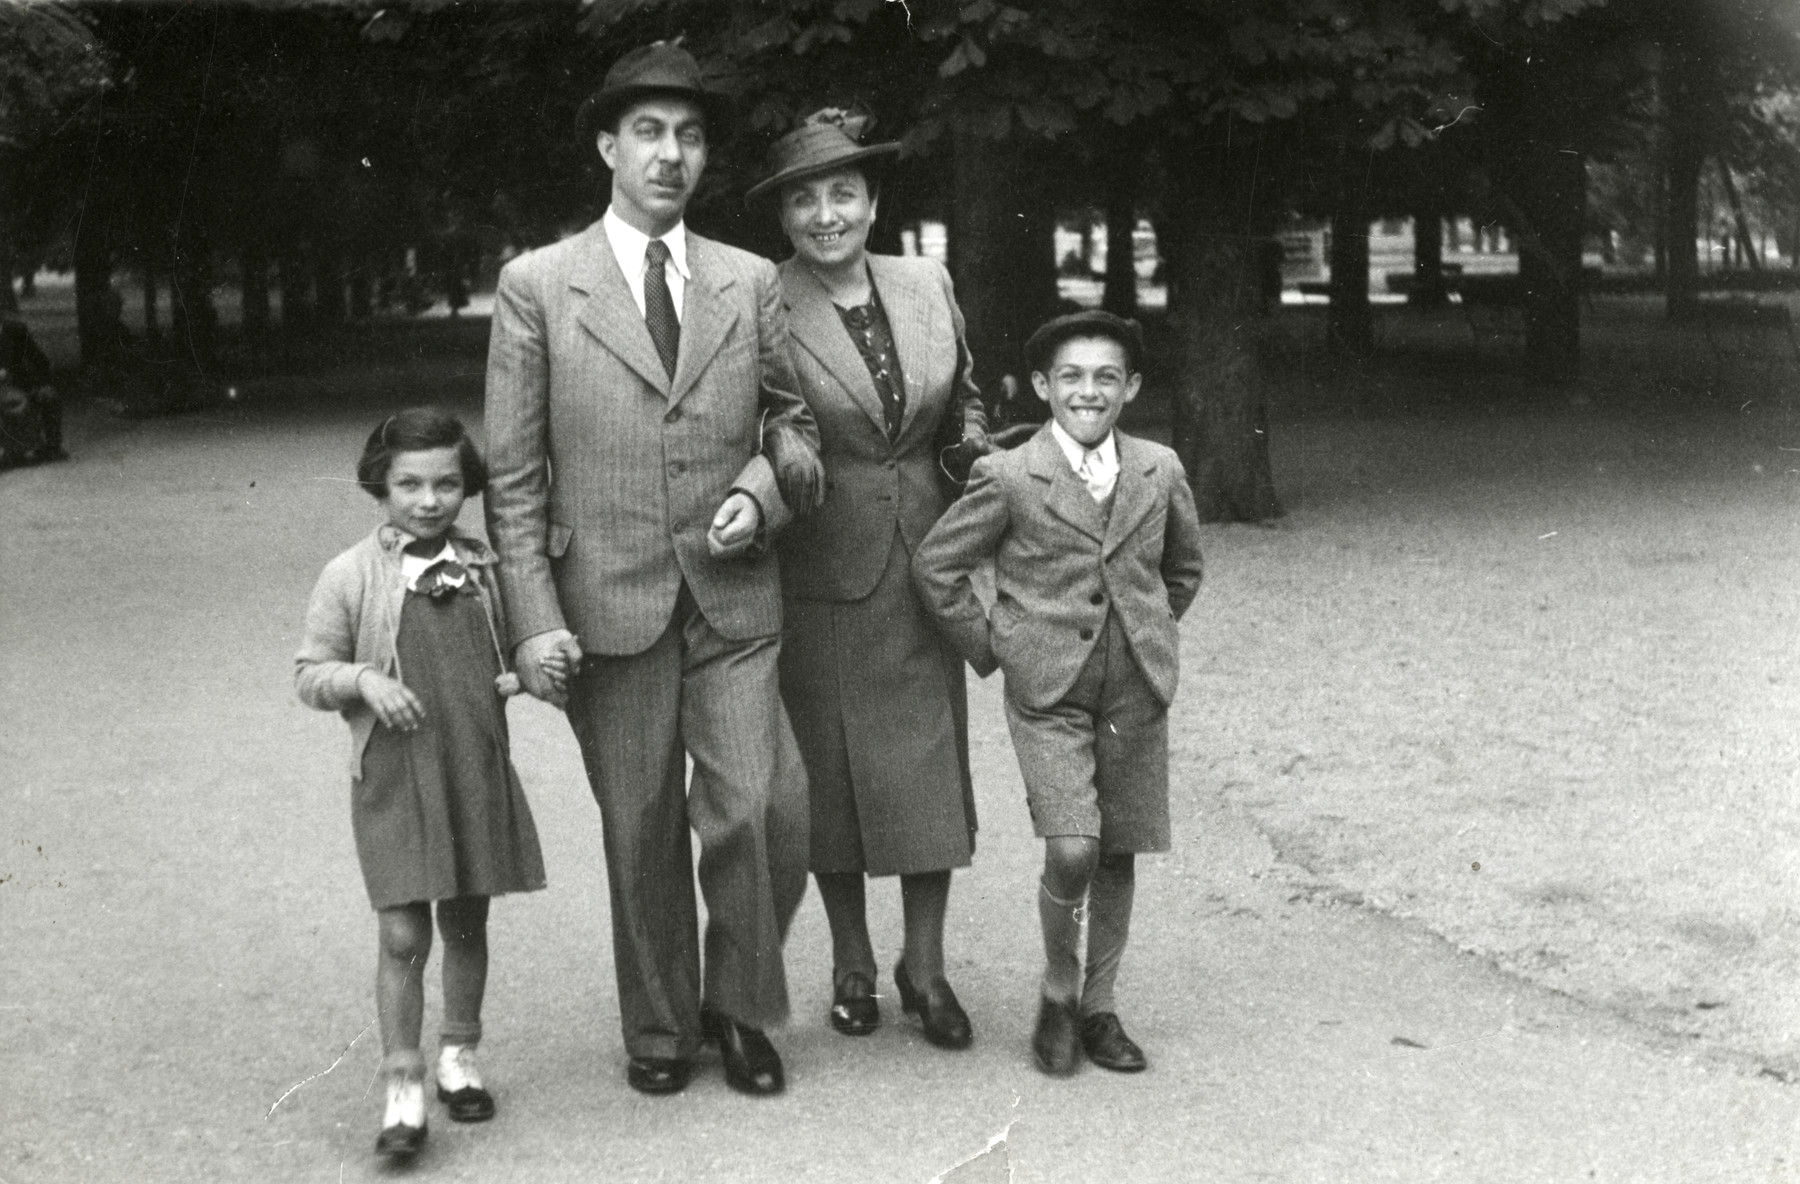 The Eckstein family poses together in a park in prewar Bratislava.  Pictured left to right are Eva, Eugene (Jeno), Helena and Ernst (Benjamin) Eckstein.